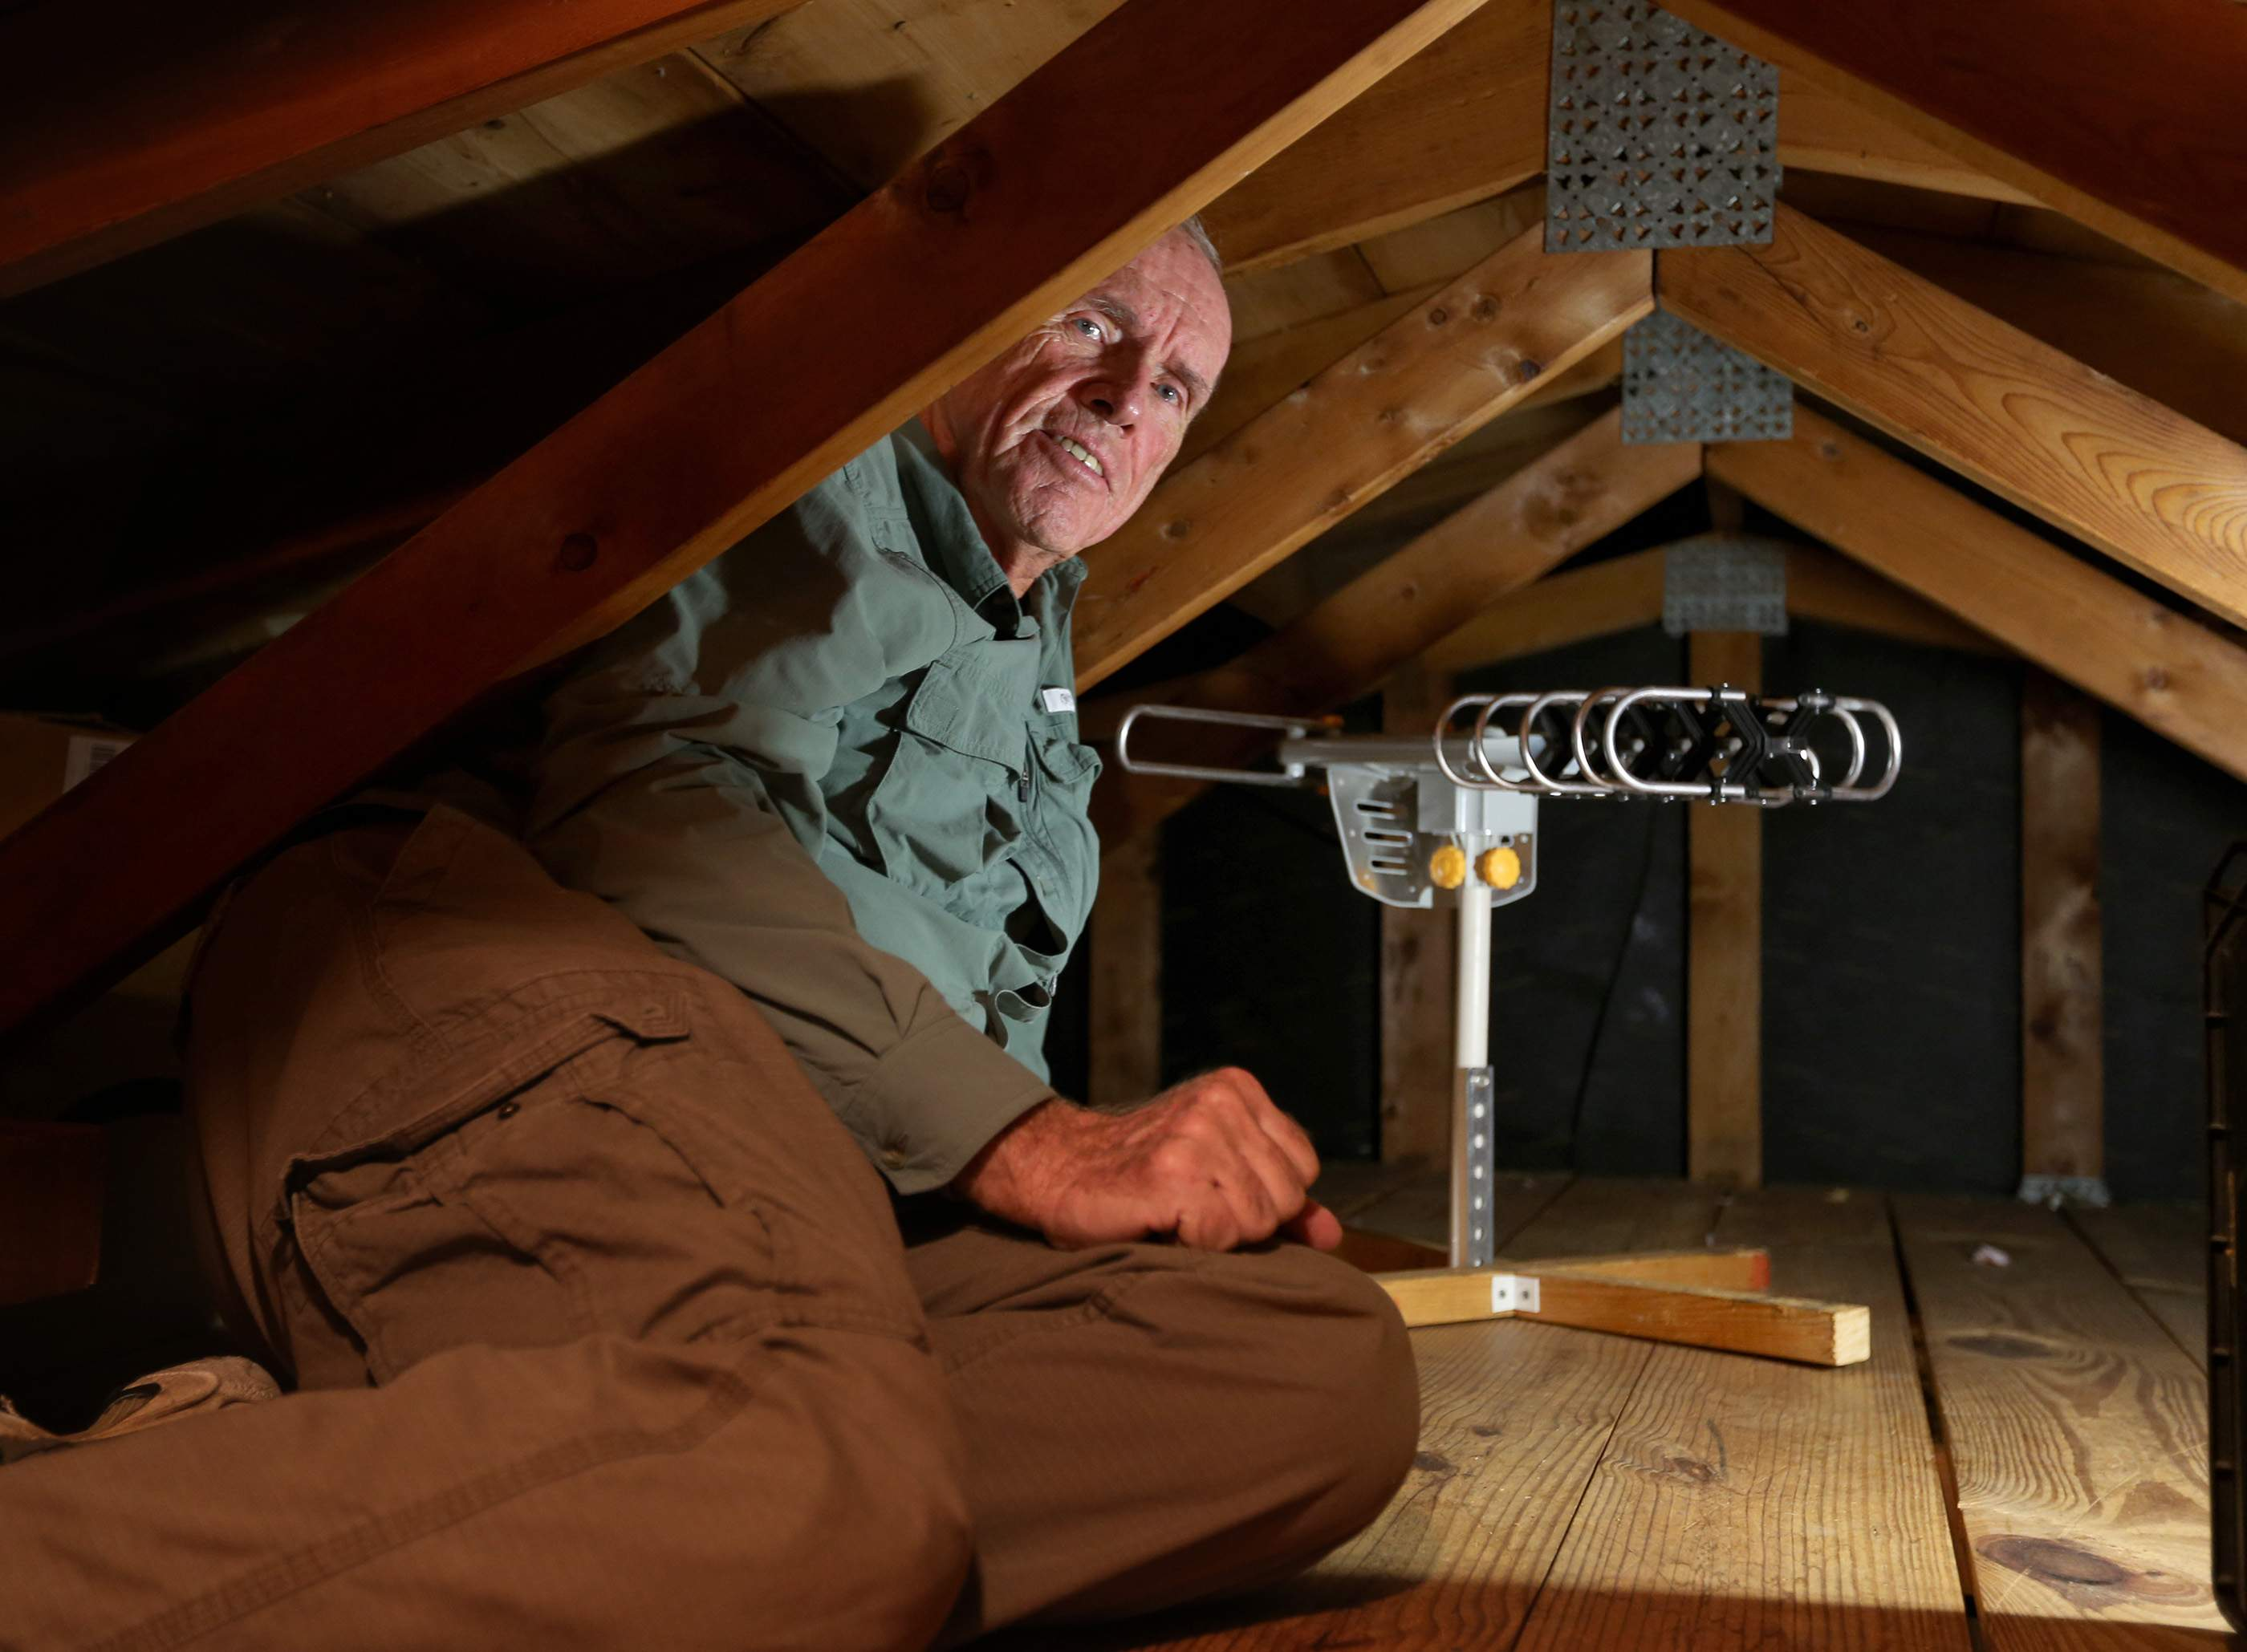 Best Attic Antenna 2020.Looking To Cut The Cord Consider An Antenna